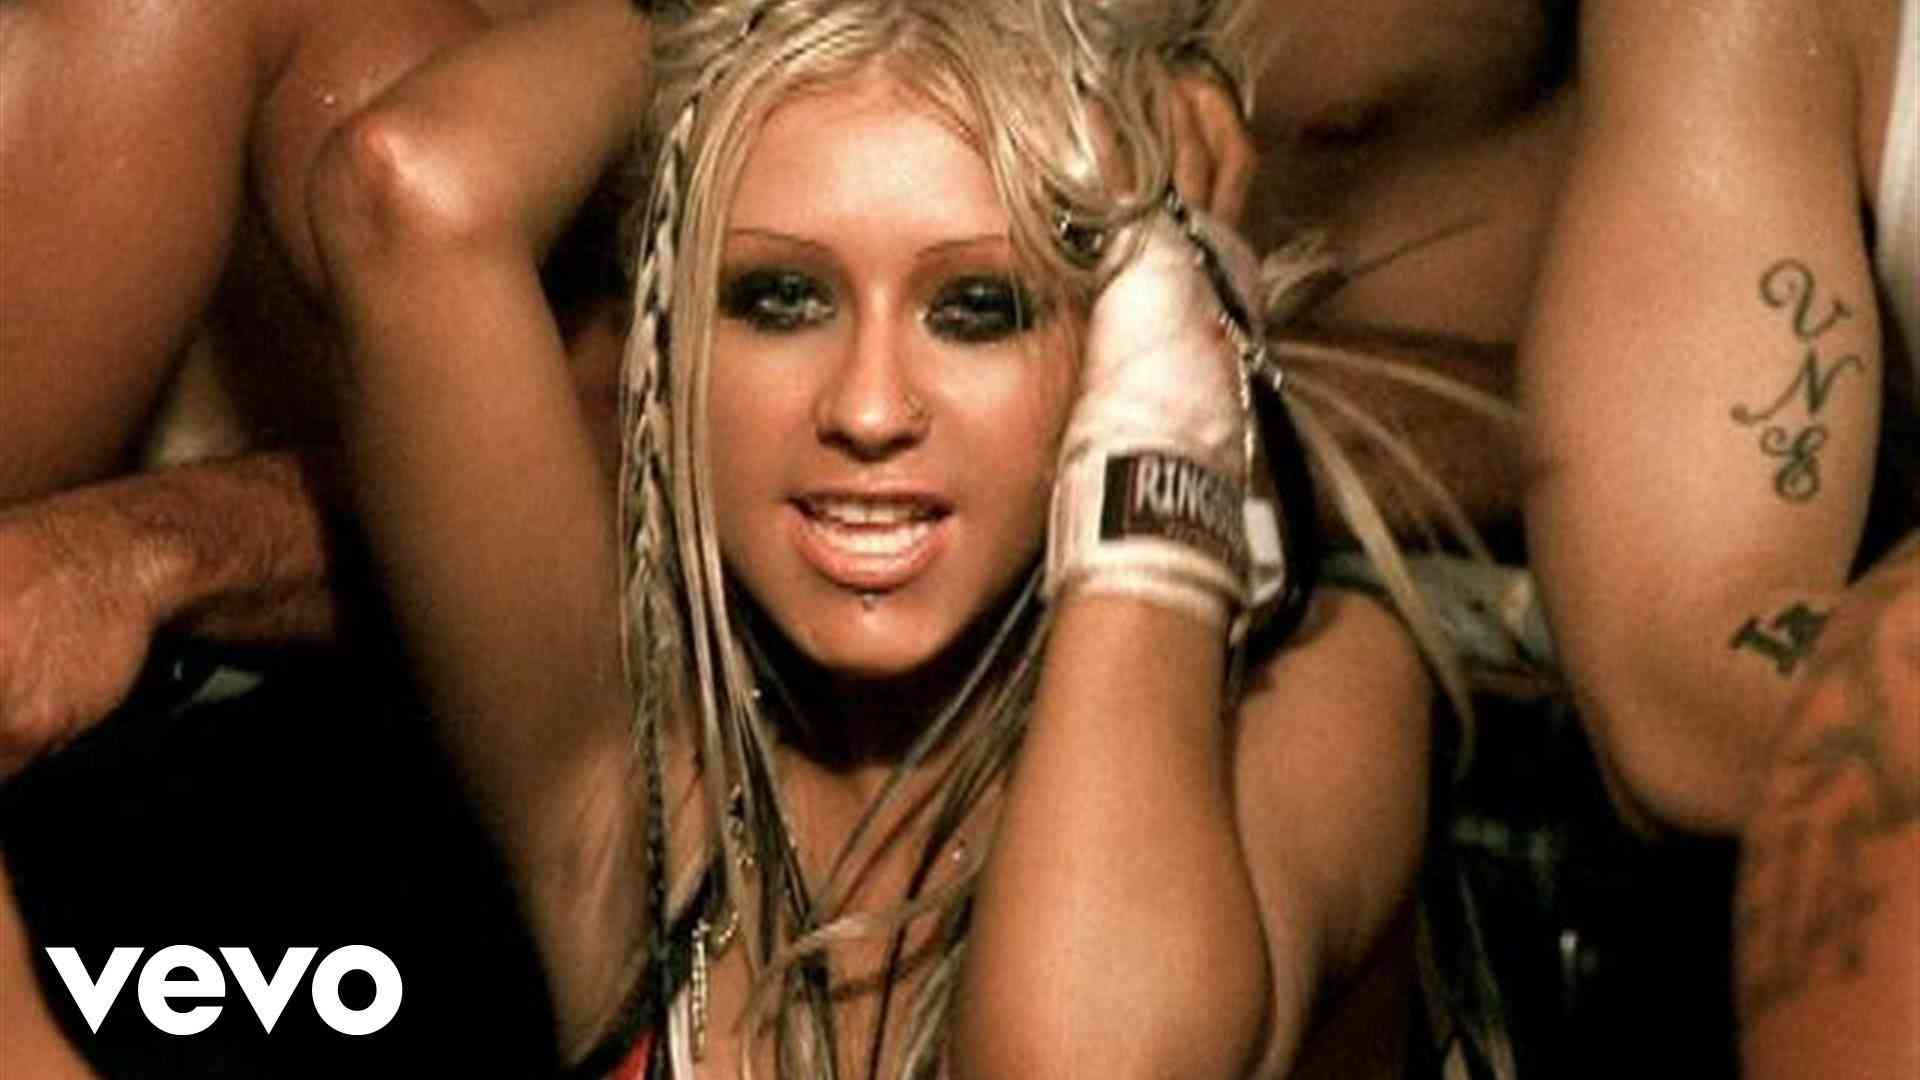 Christina Aguilera - Dirrty (VIDEO) ft. Redman - YouTube